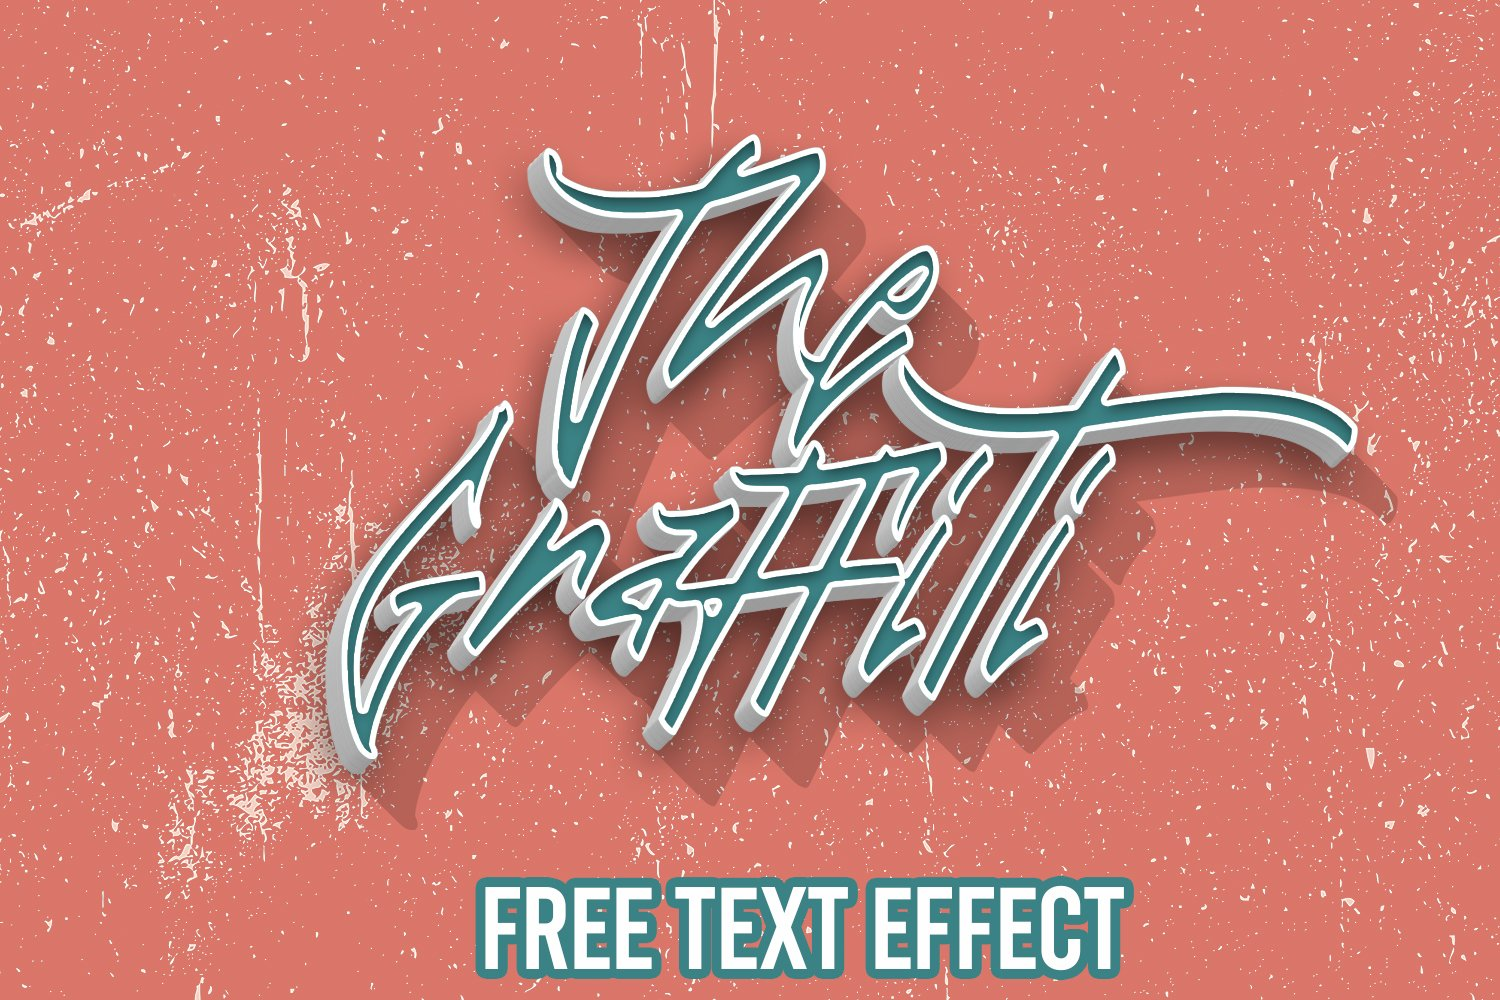 The Graffiti Font | Free Text Effect example image 3